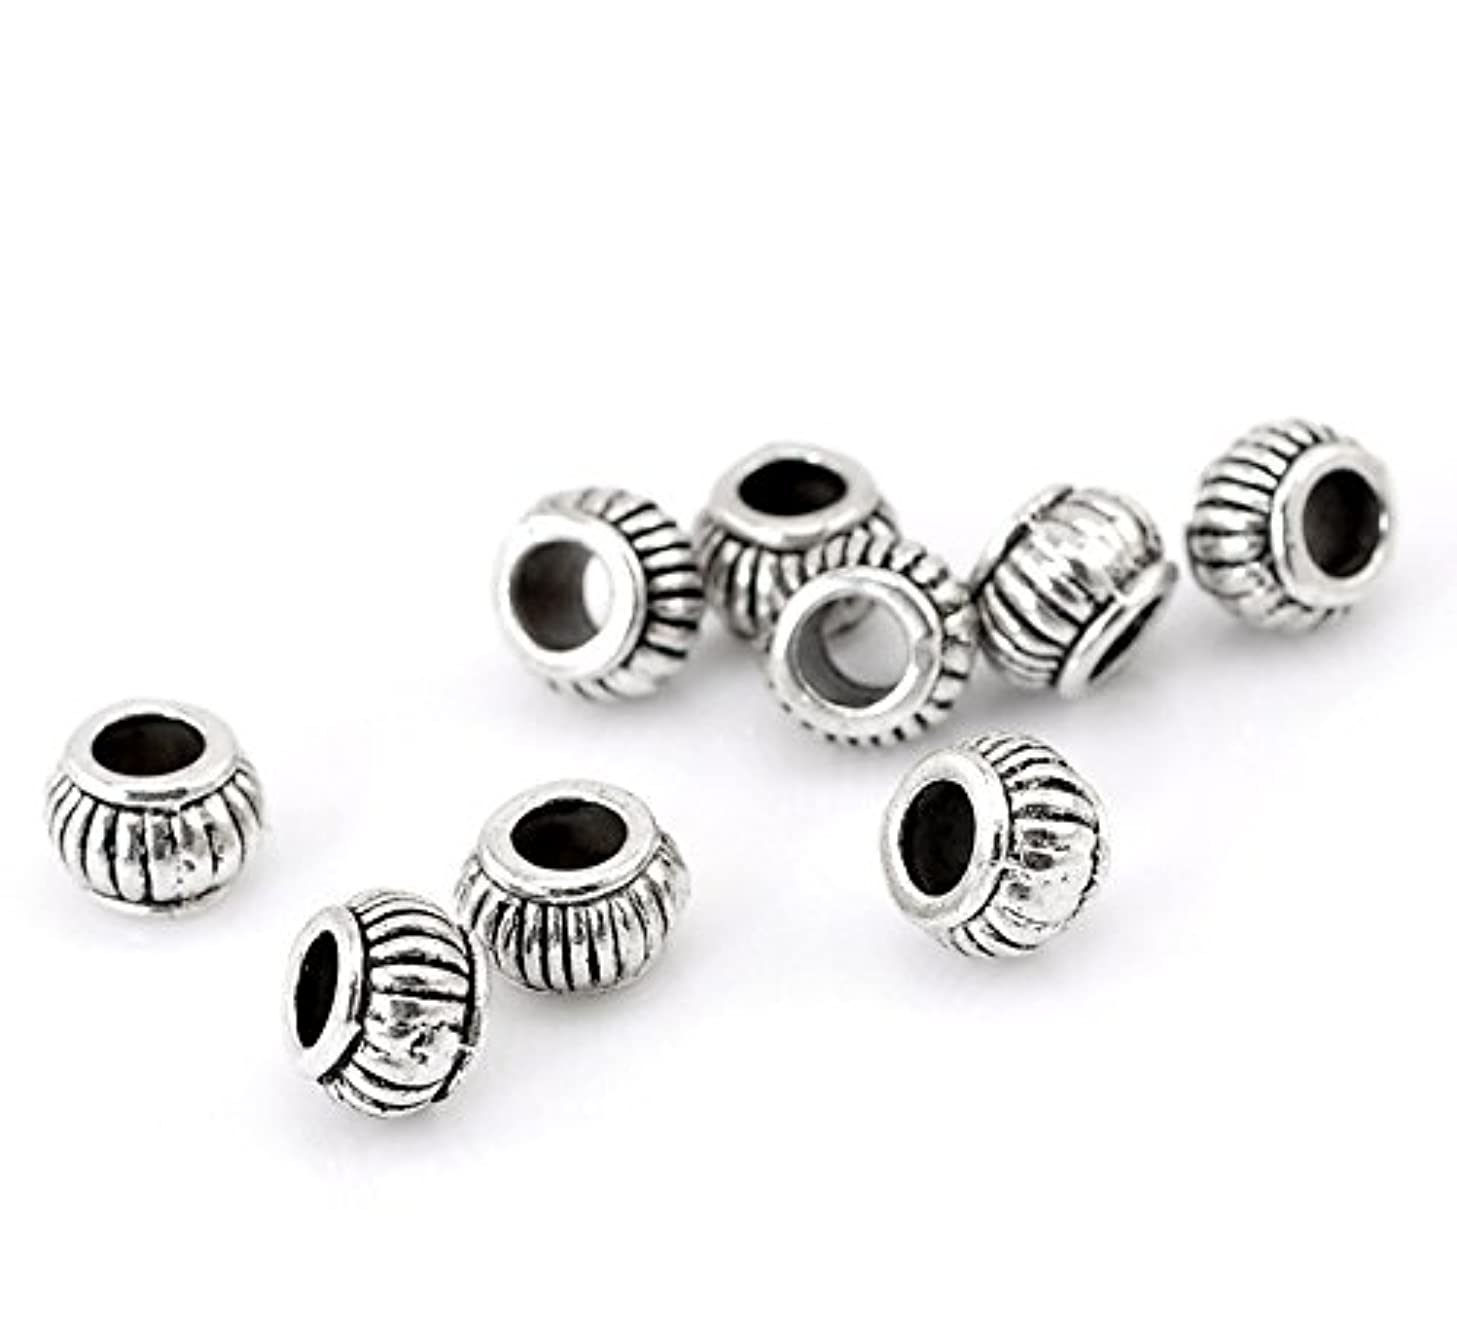 100pc Antiqued Silver Spacer Beads Large Hole Beading Supplies [Office Product]